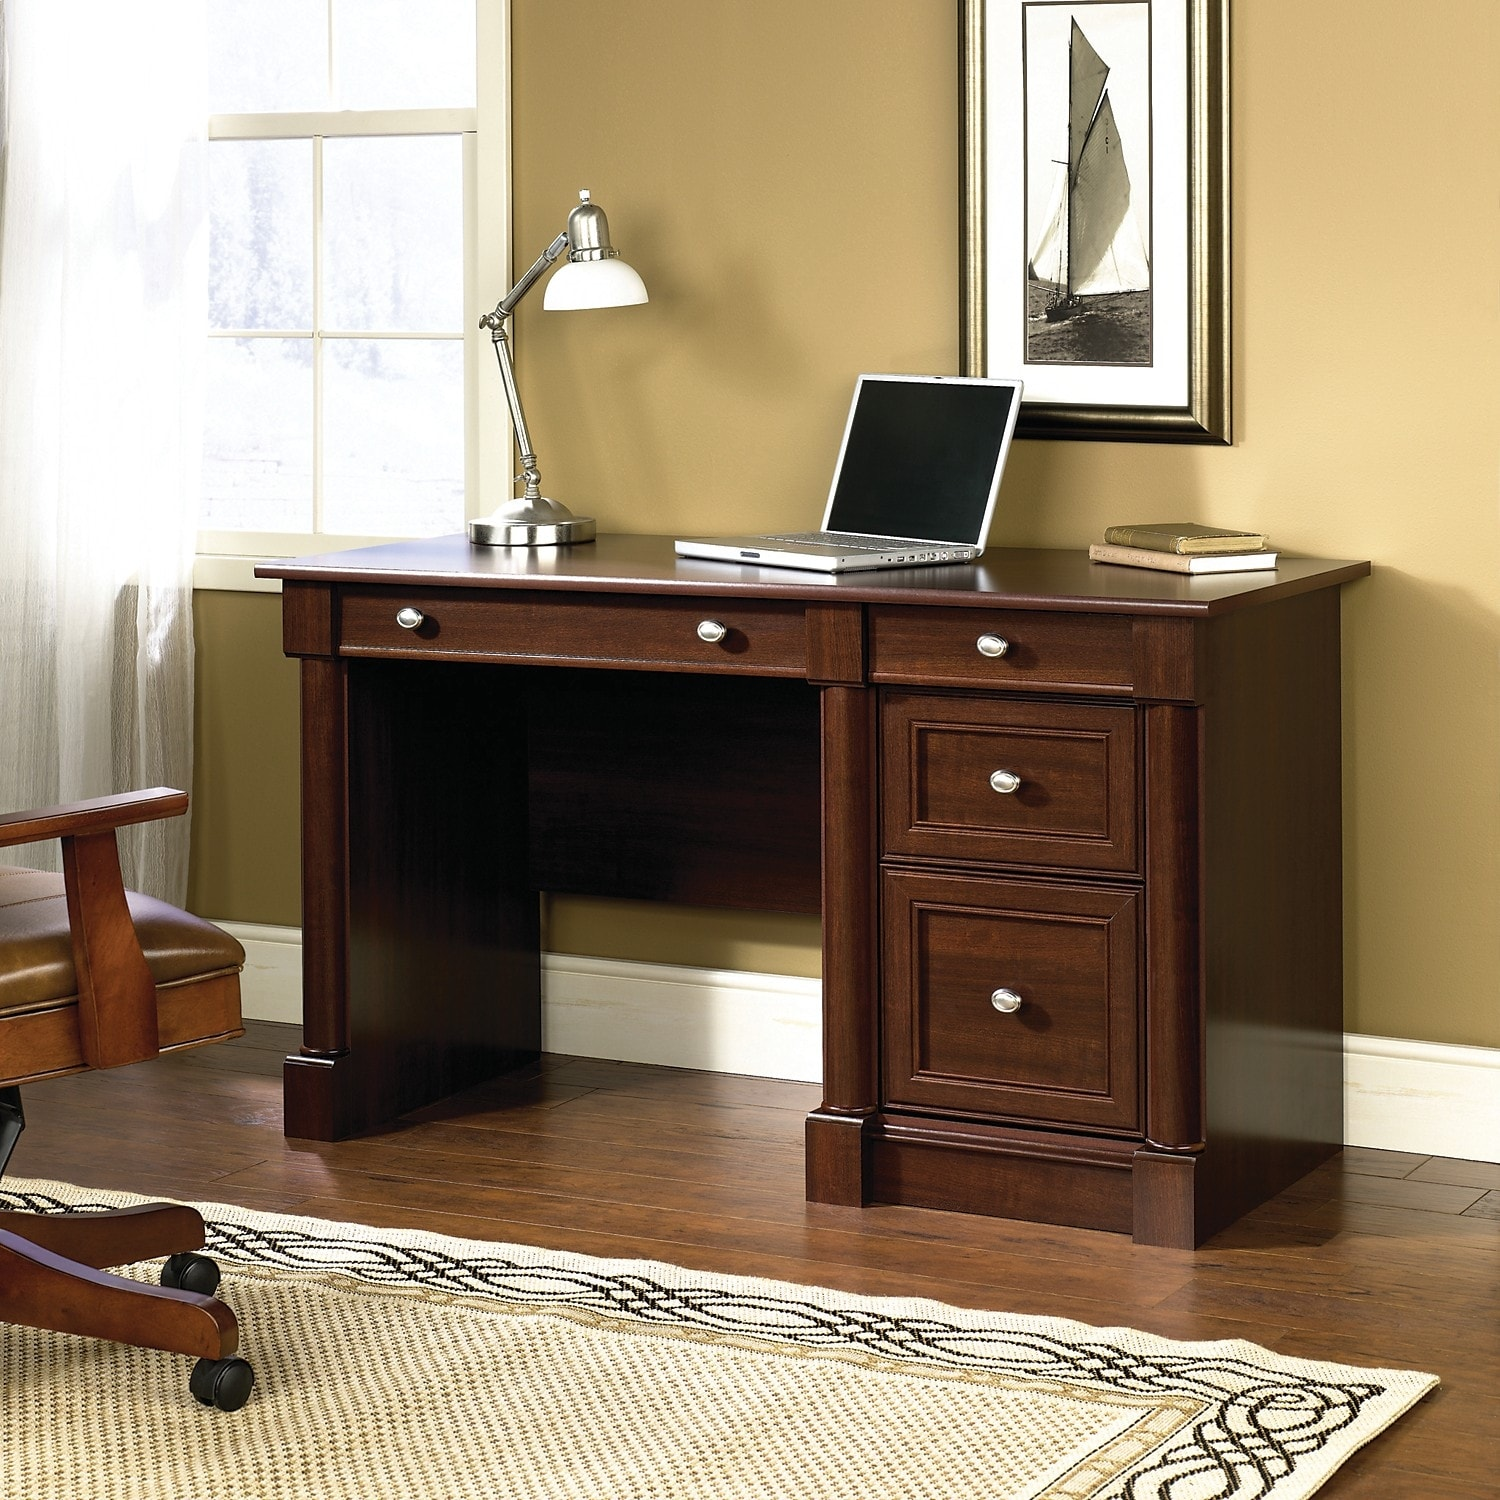 Palladia Desk Select Cherry The Brick